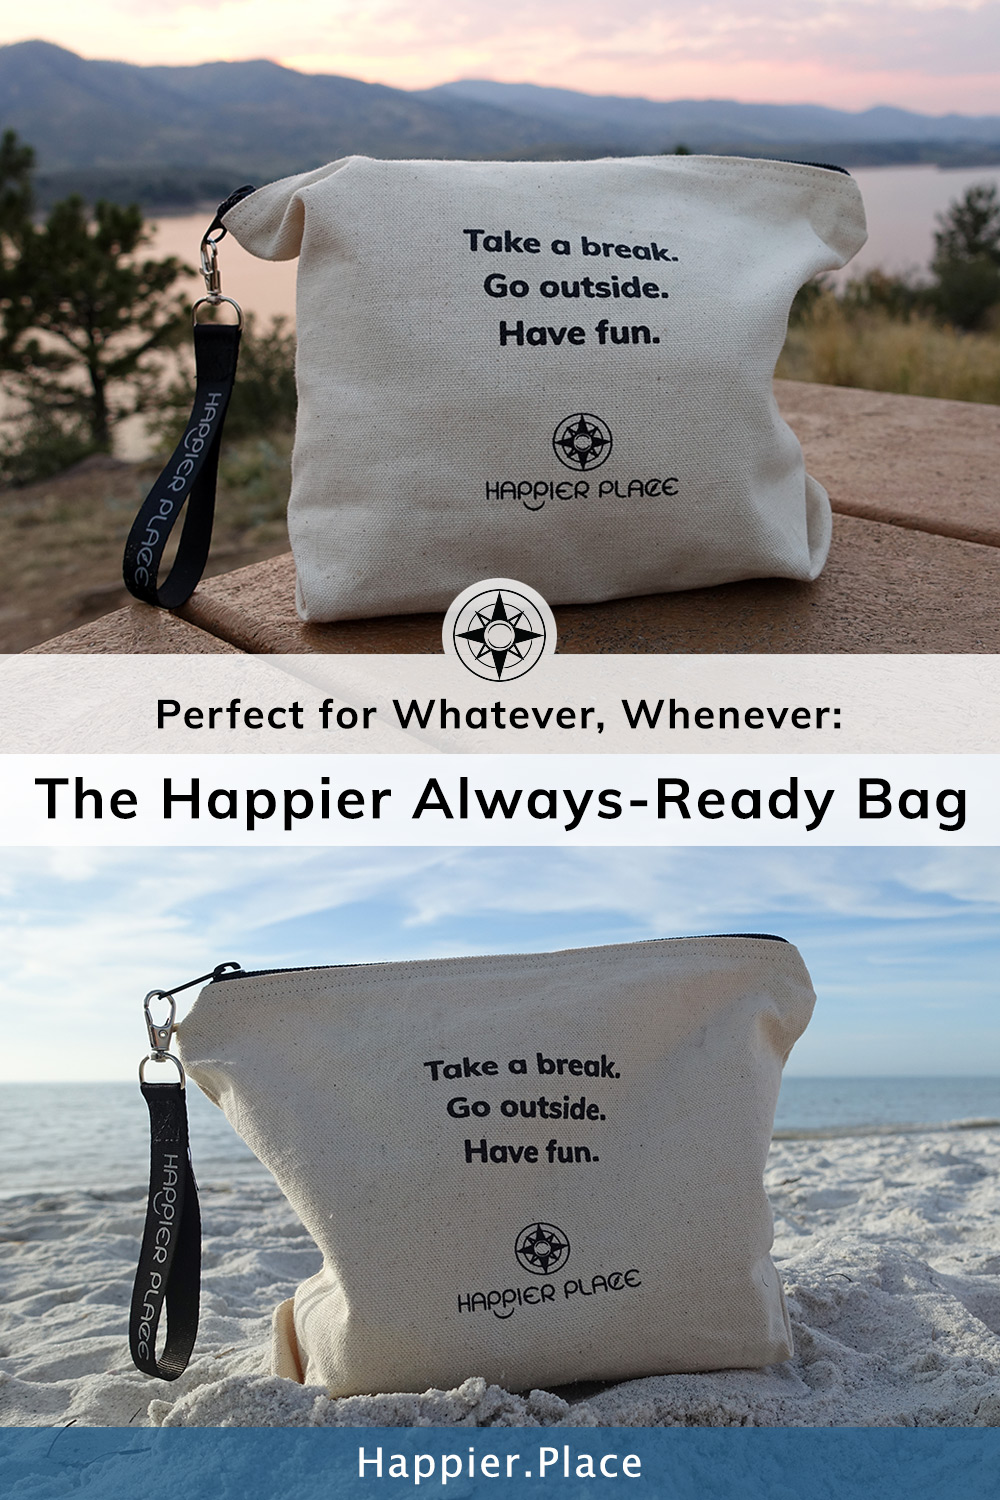 Perfect for Whatever, Whenever: The Happier Always-Ready Bag